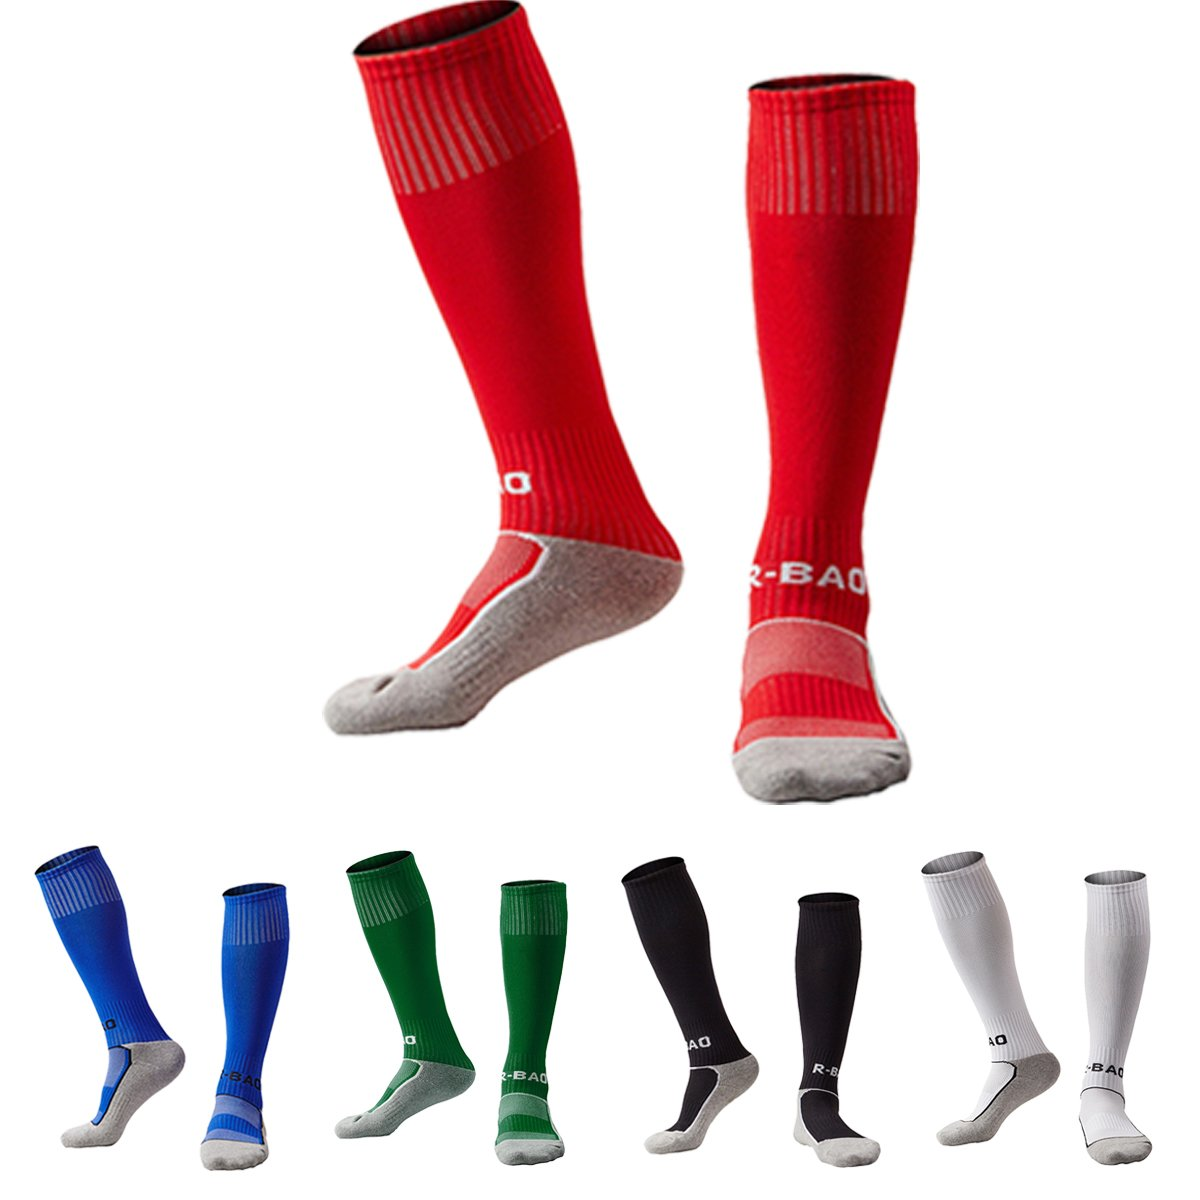 Kalakids SOCKSHOSIERY ボーイズ B073N71KMM Red / Royalblue / Dark Green / Black / White Red / Royalblue / Dark Green / Black / White